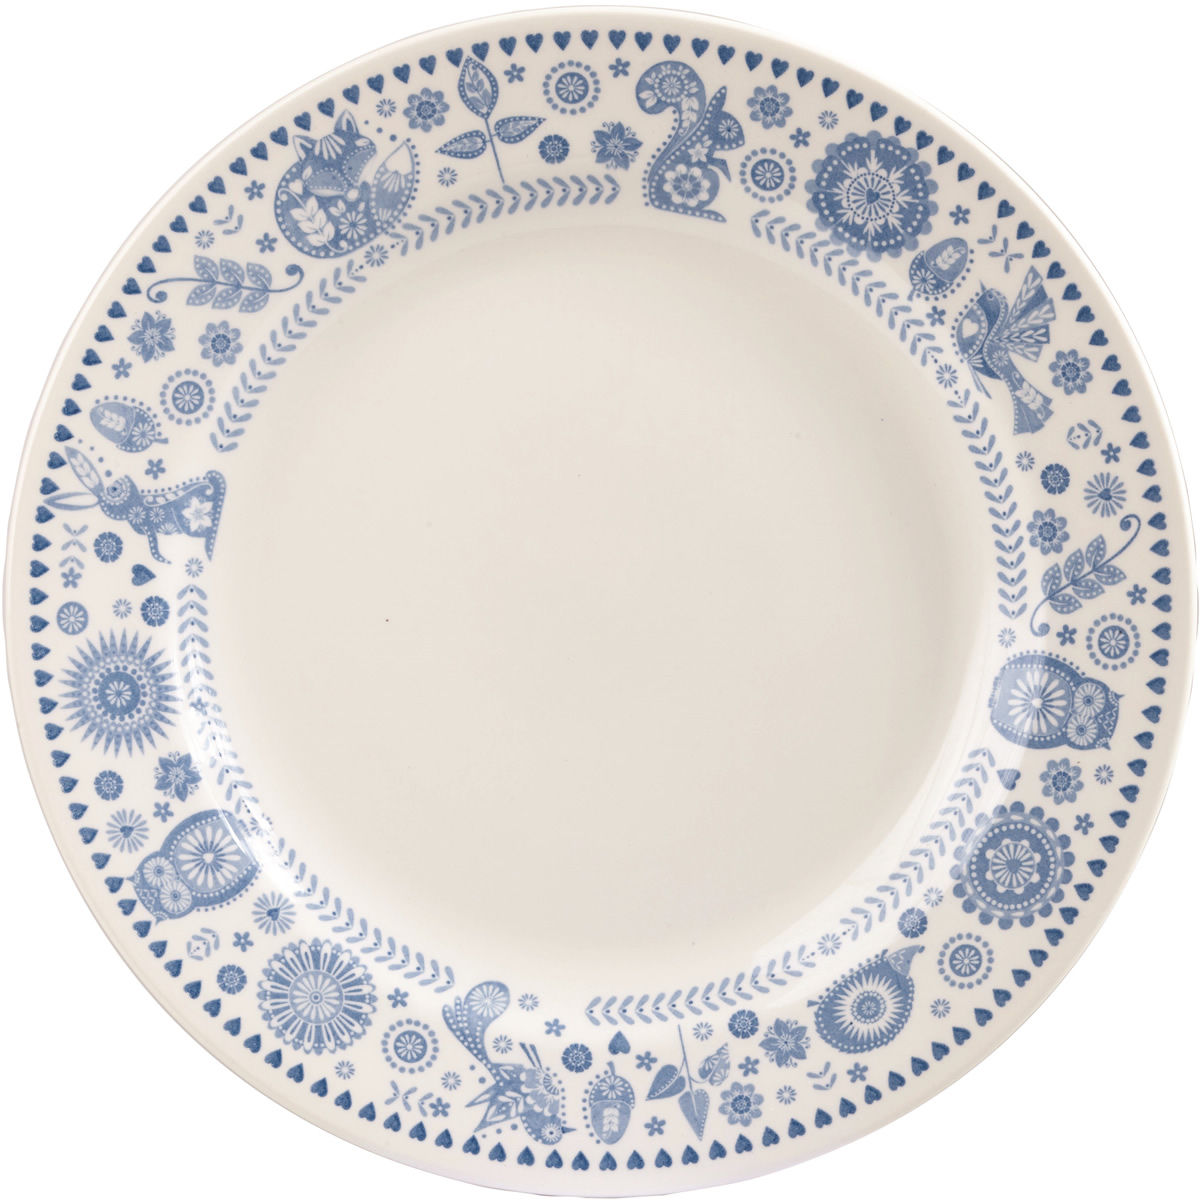 Caravan Trail Penzance Dinner Plate Border 26cm  sc 1 st  Louis Potts & Caravan Trail Penzance Dinner Plate Border 26cm | Louis Potts